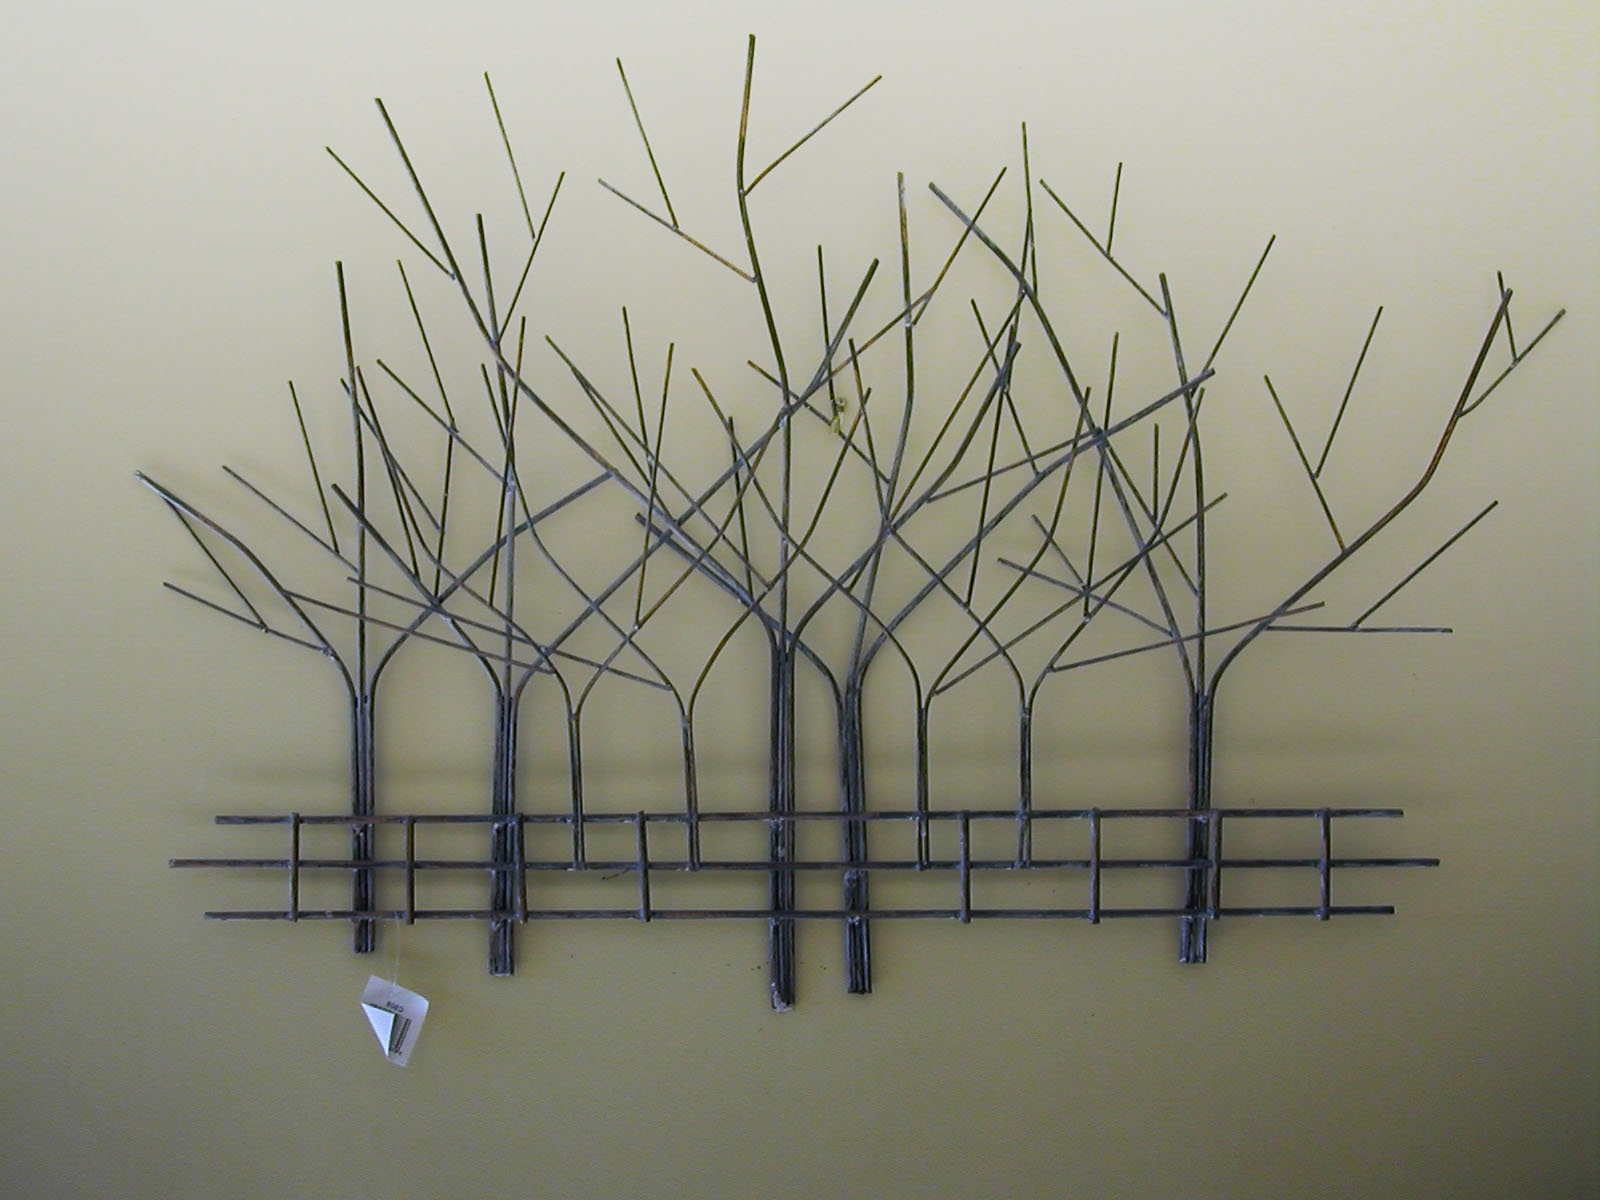 Art Sculptures For Home, Metal Tree Wall Art Metal Wall Art Pertaining To Most Up To Date Metal Tree Wall Art Sculpture (View 6 of 15)